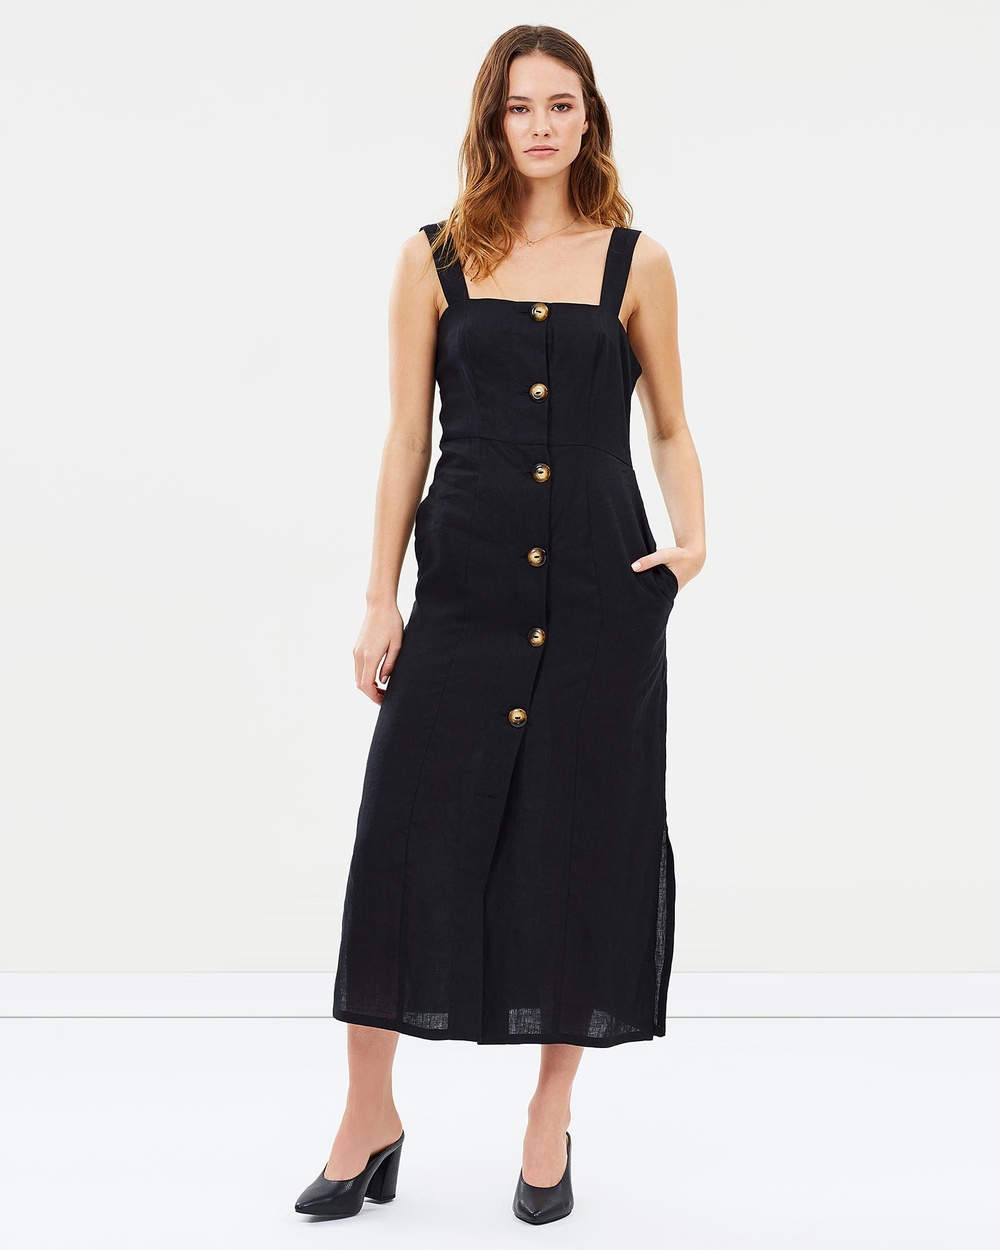 Jillian Boustred Chloe Dress Dresses Black Chloe Dress